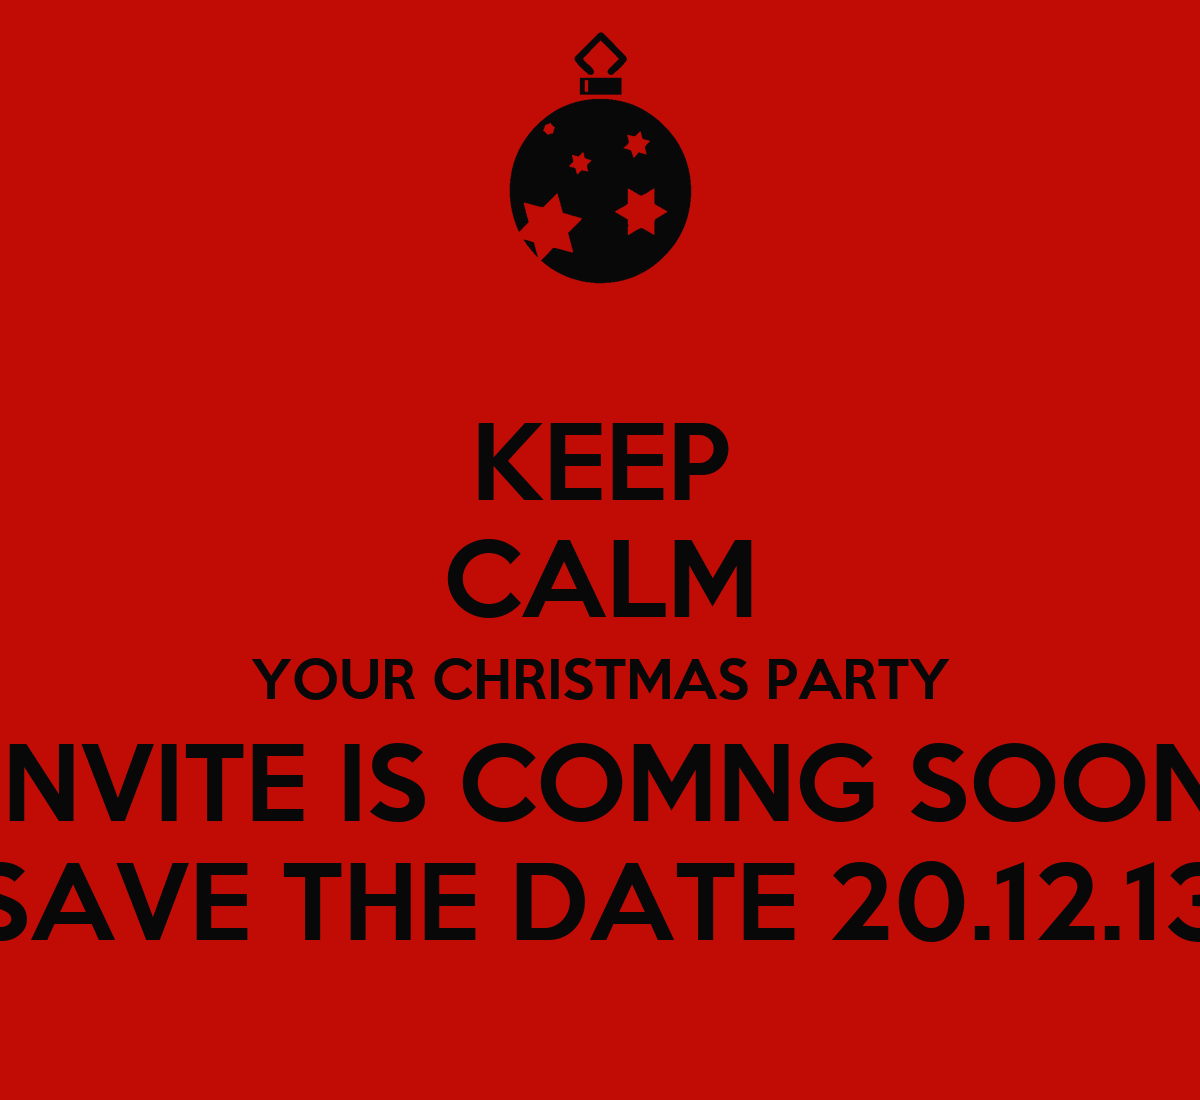 keep calm your christmas party invite is comng soon save the date poster torpants1. Black Bedroom Furniture Sets. Home Design Ideas